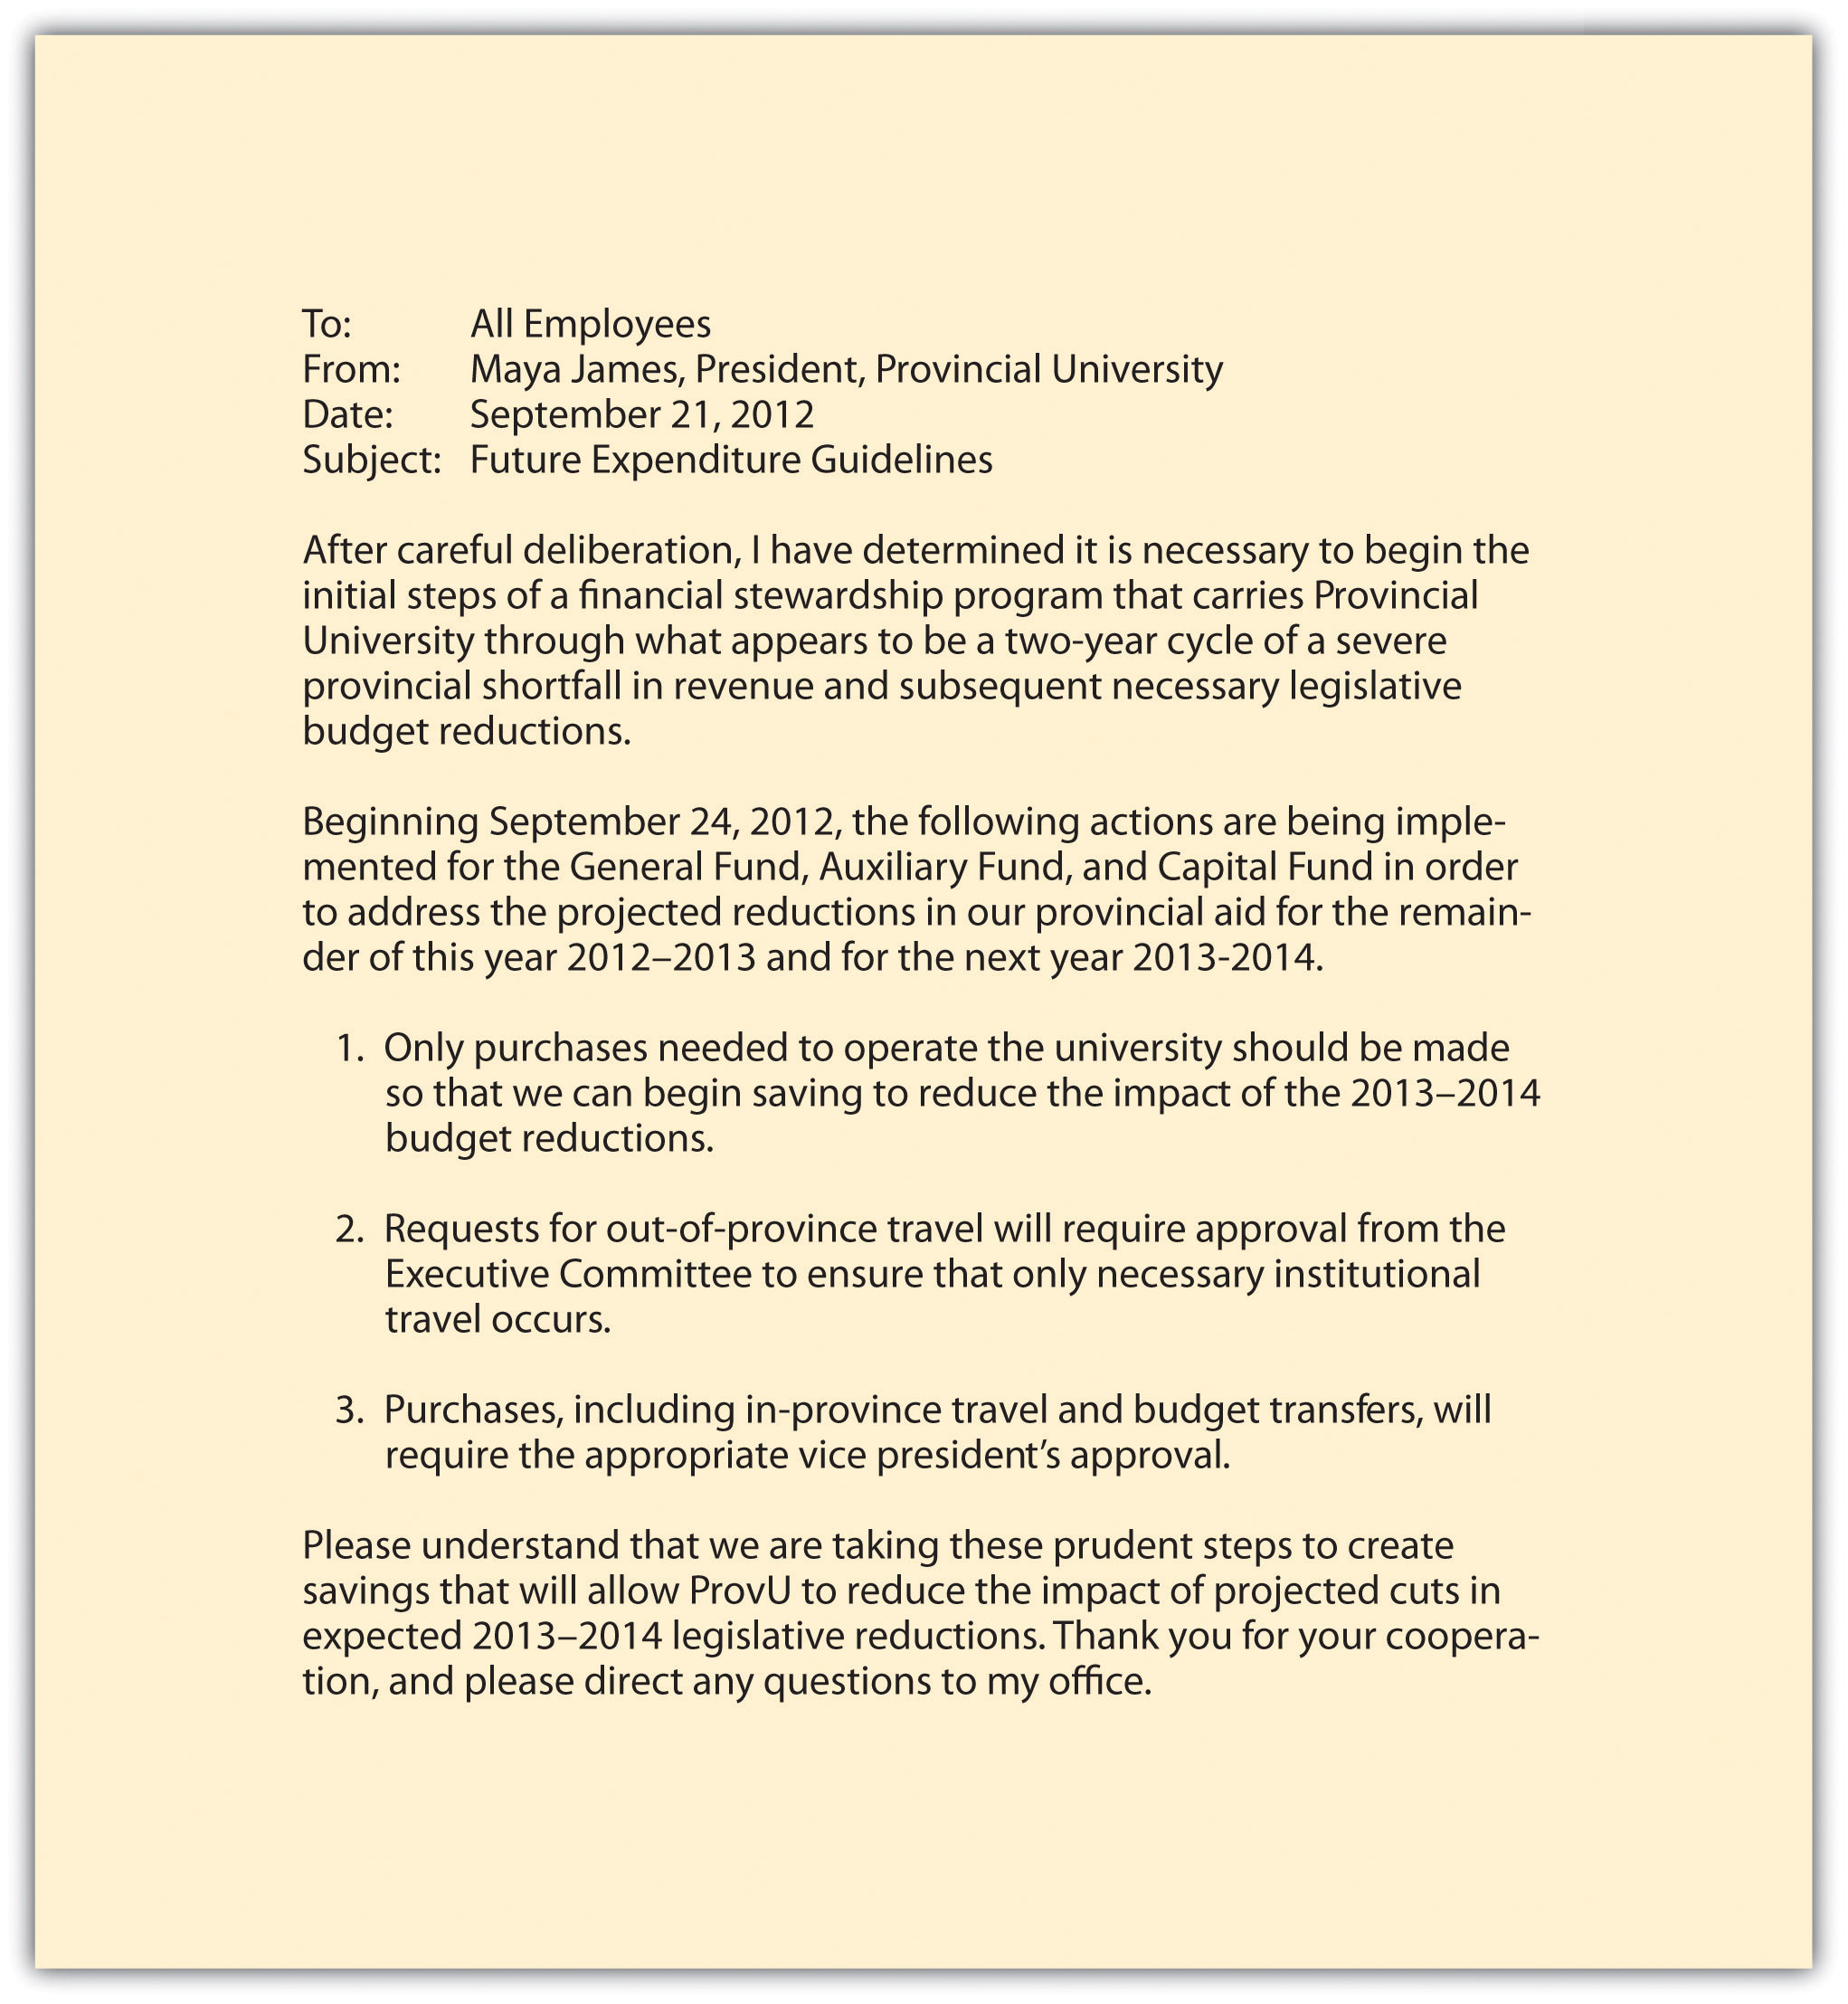 Memo Outlines Education Dept Plans To >> Memos Purpose And Format Technical Writing